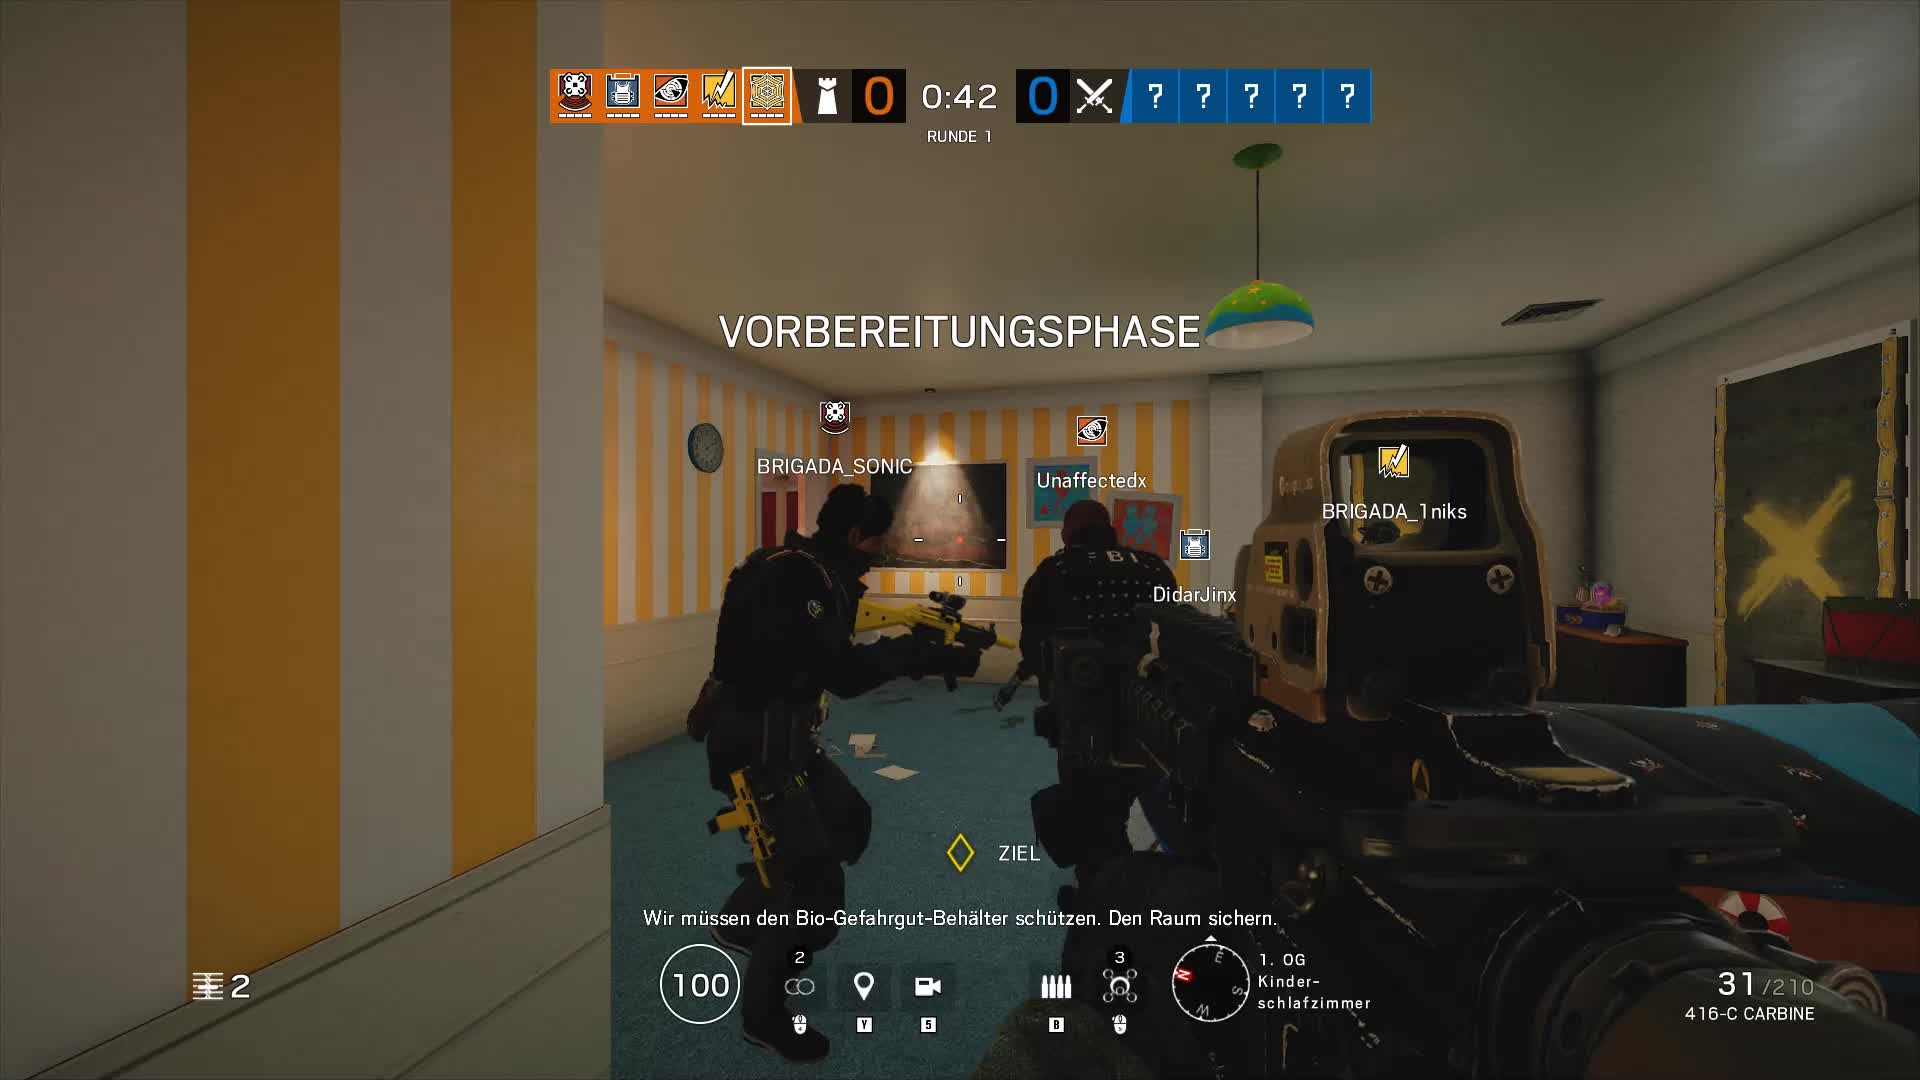 This is incredible! Rainbow6 GIFs